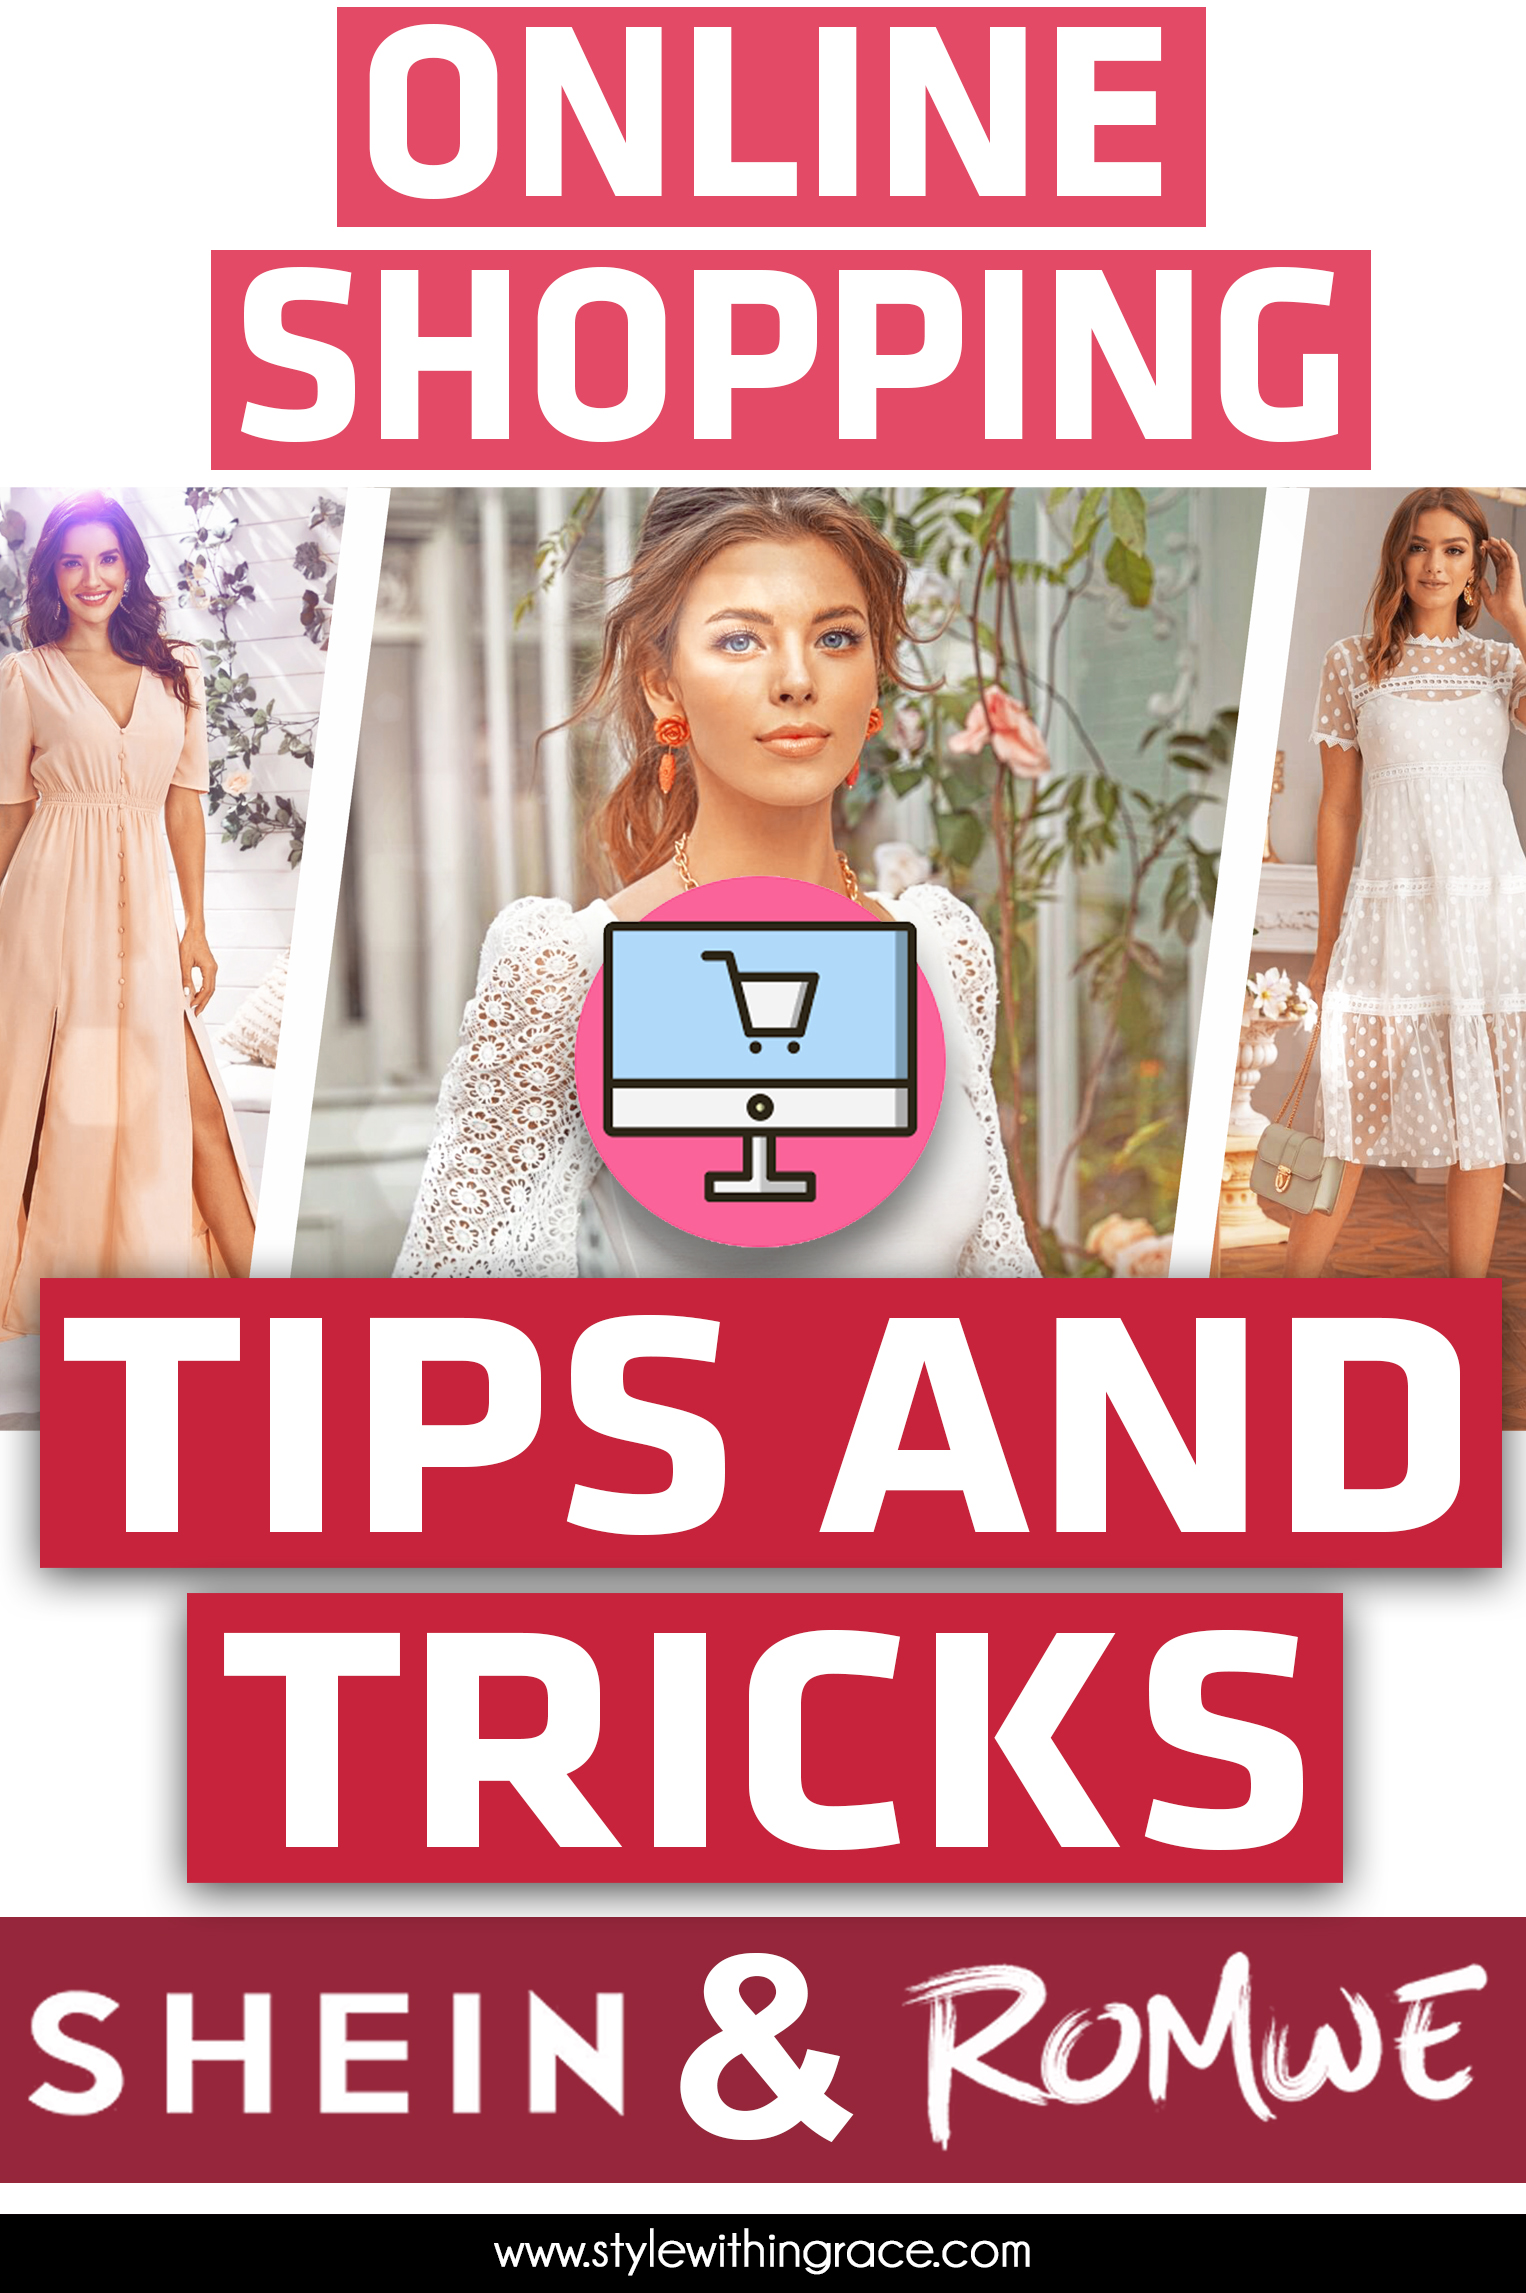 Shein and Romwe Tips and Tricks Pinterest